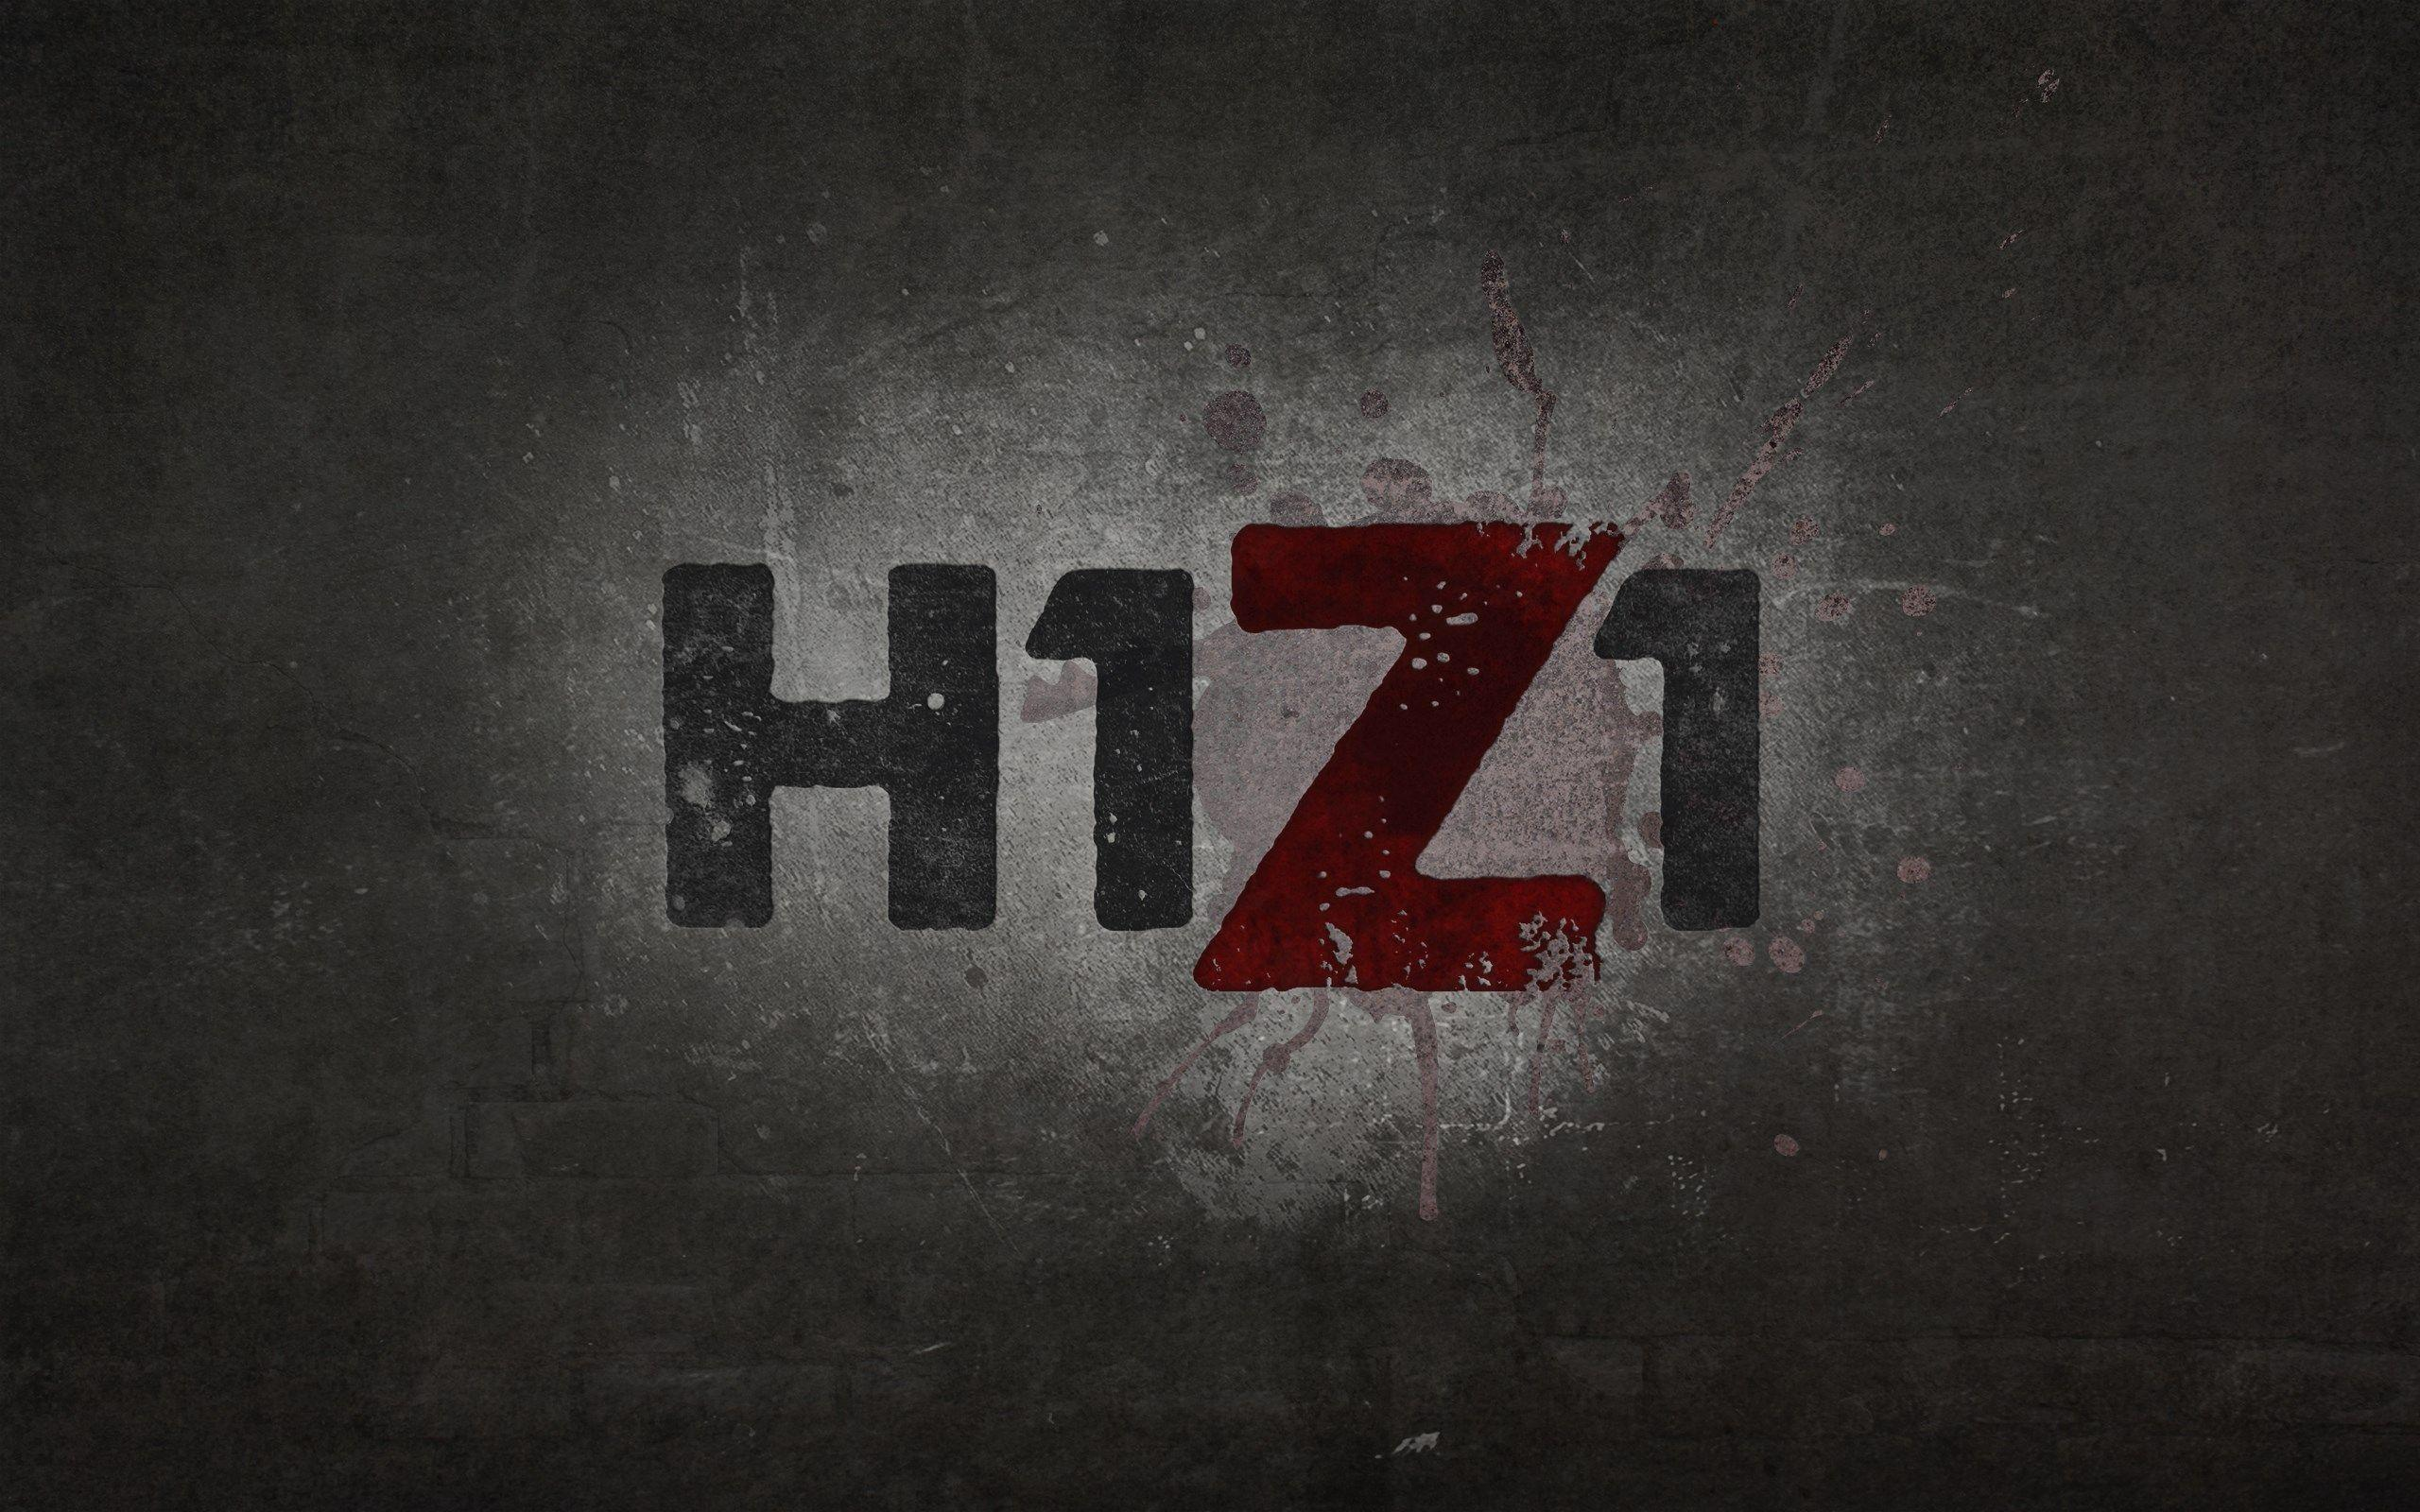 H1Z1 PS4 Wallpapers - Wallpaper Cave